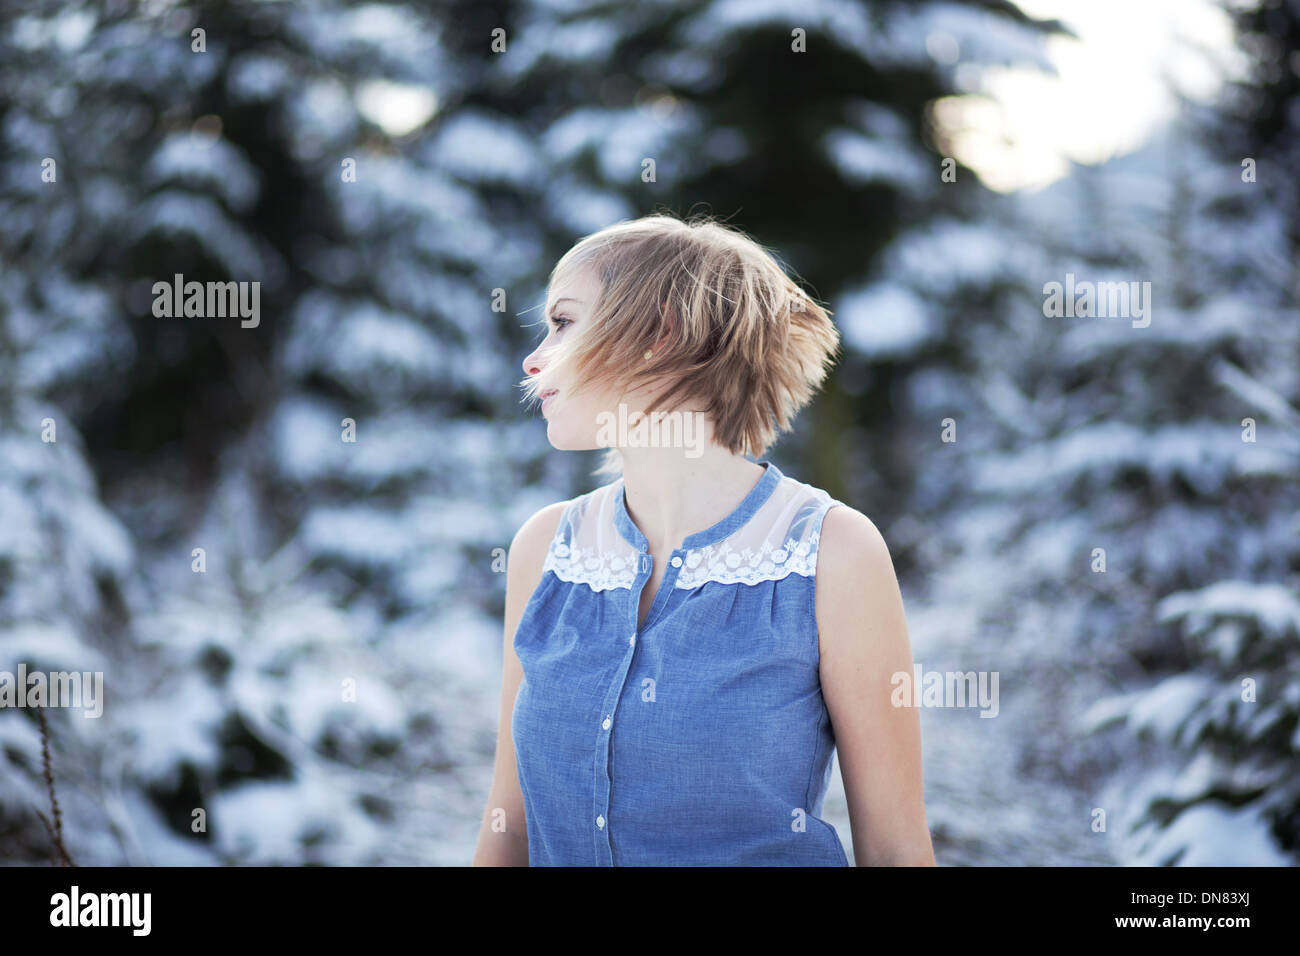 Portrait of a young woman in snow Stock Photo